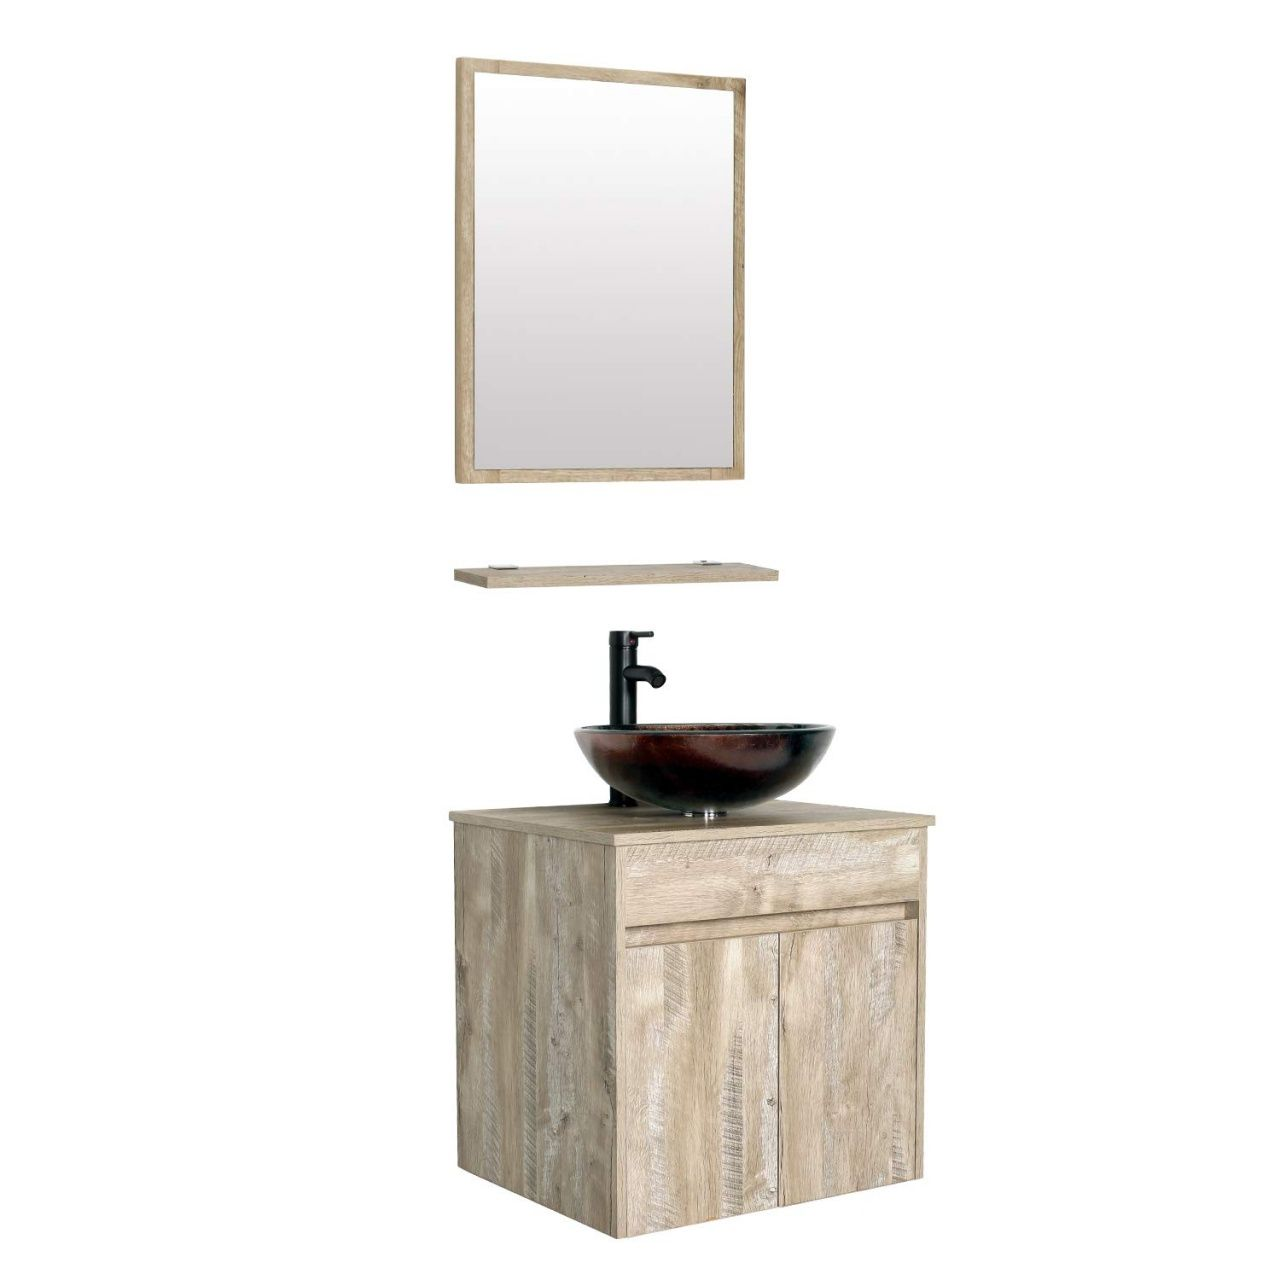 58 Inch Bathroom Vanity Single Sink In 2020 Bathroom Vanity